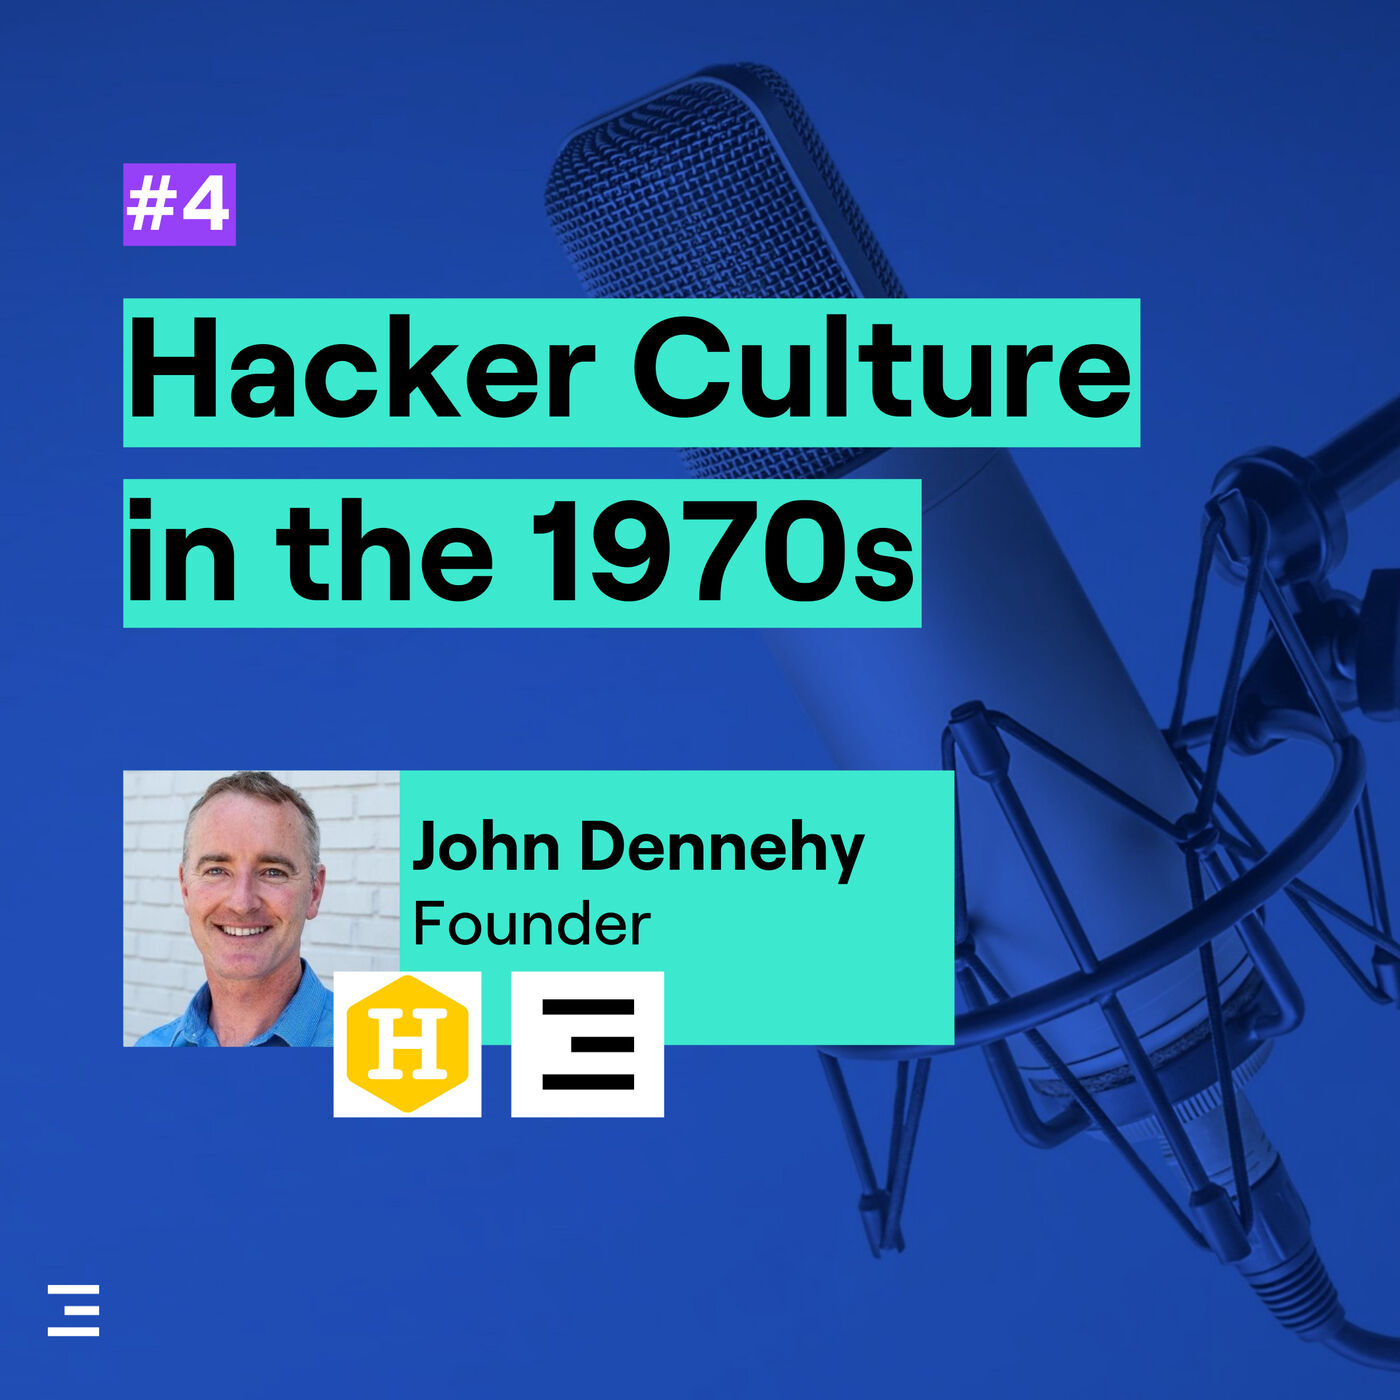 4. Hacker Culture in the 1970s